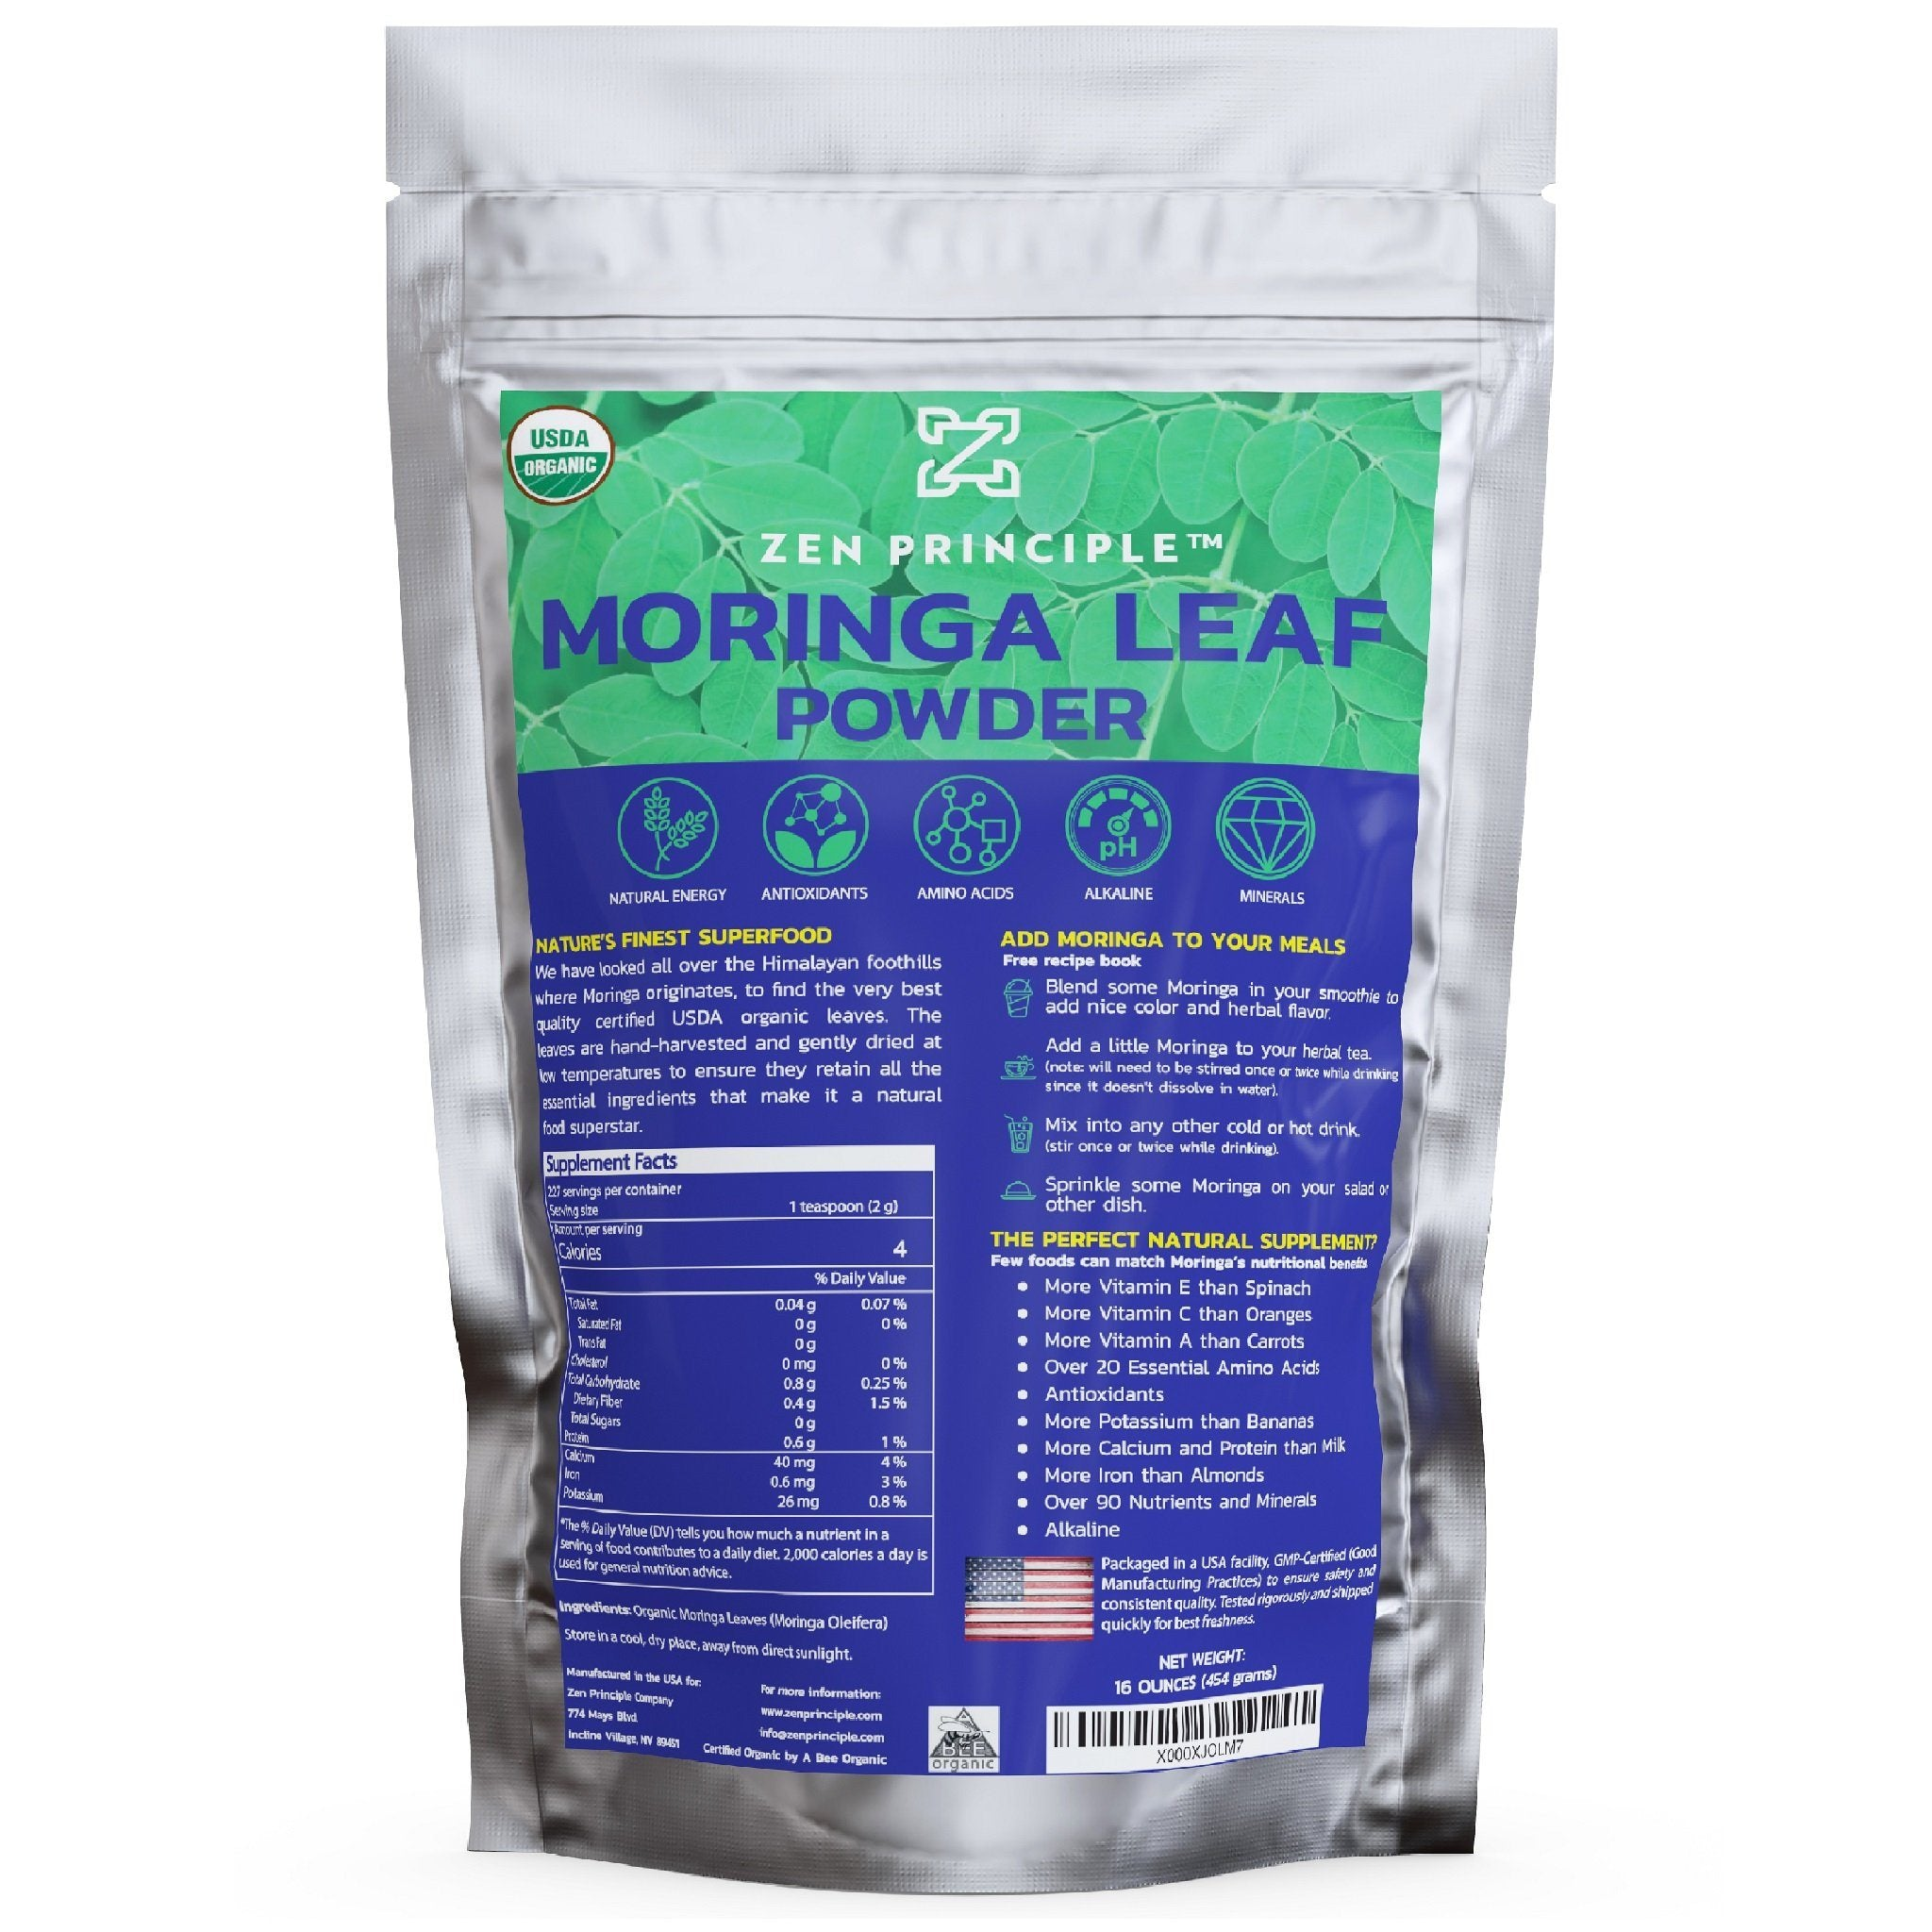 Buy Organic Moringa Leaf Powder From 19 95 With Free Shipping